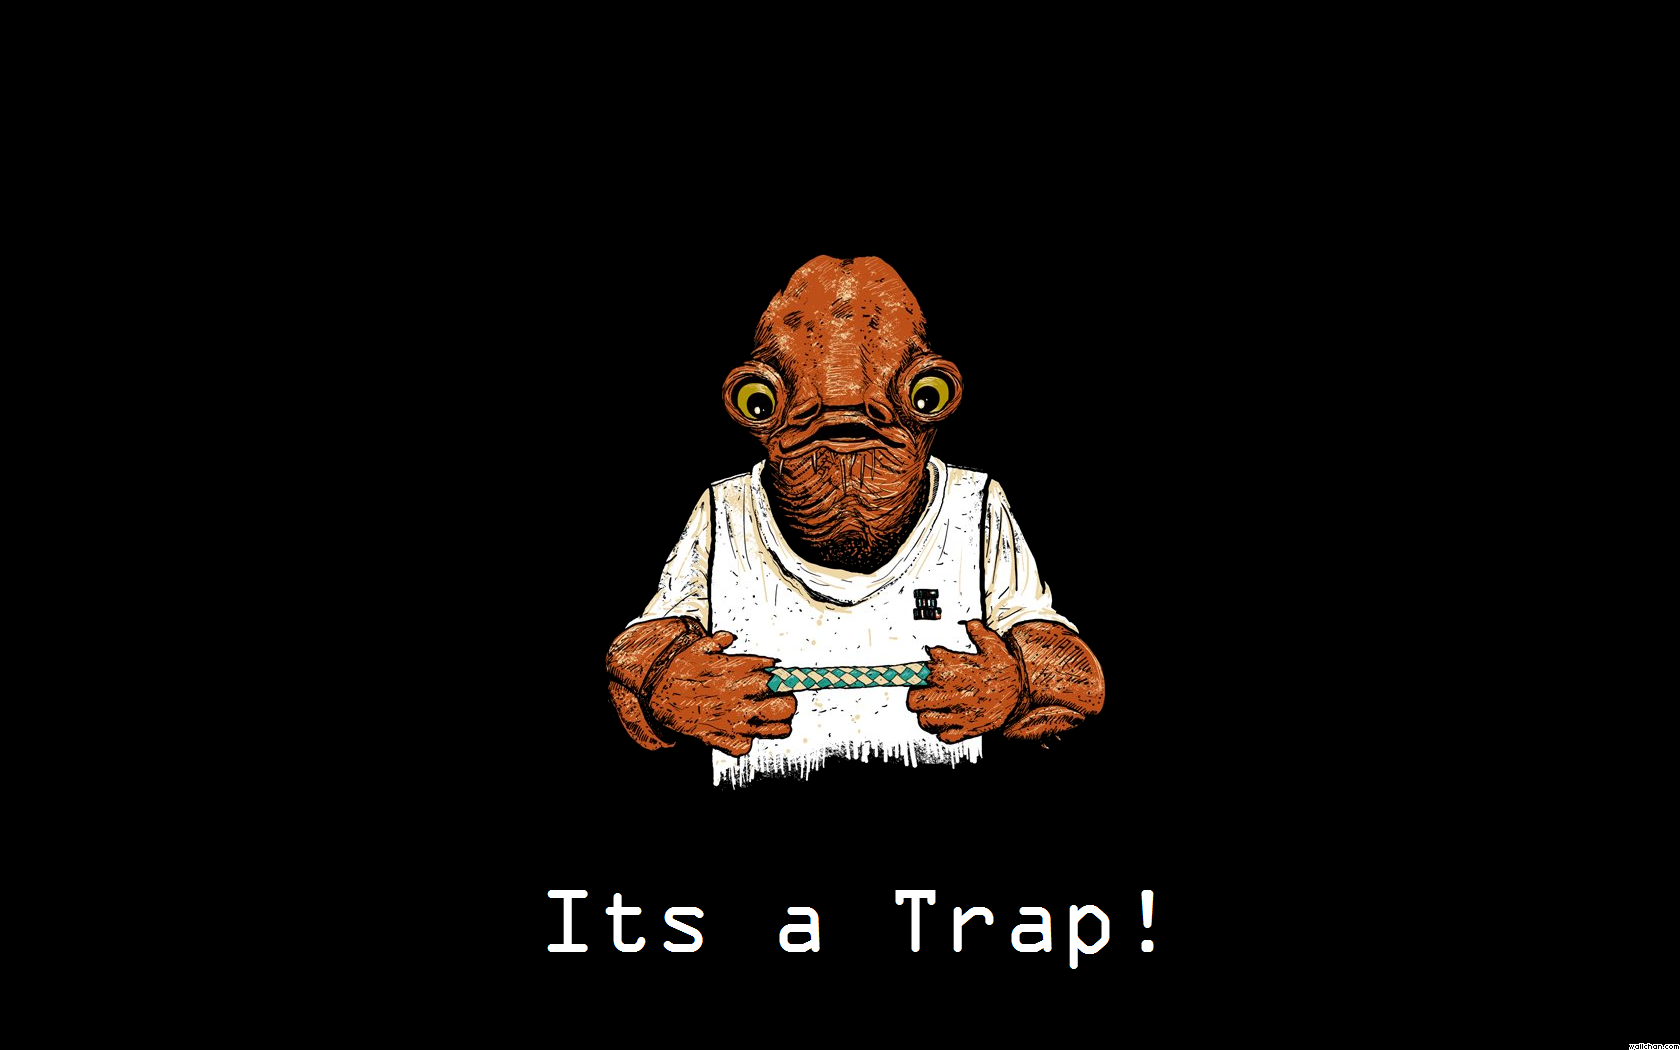 http://theretroset.com/wp-content/uploads/2014/07/7134-star-wars-admiral-ackbar-trap-funny.png